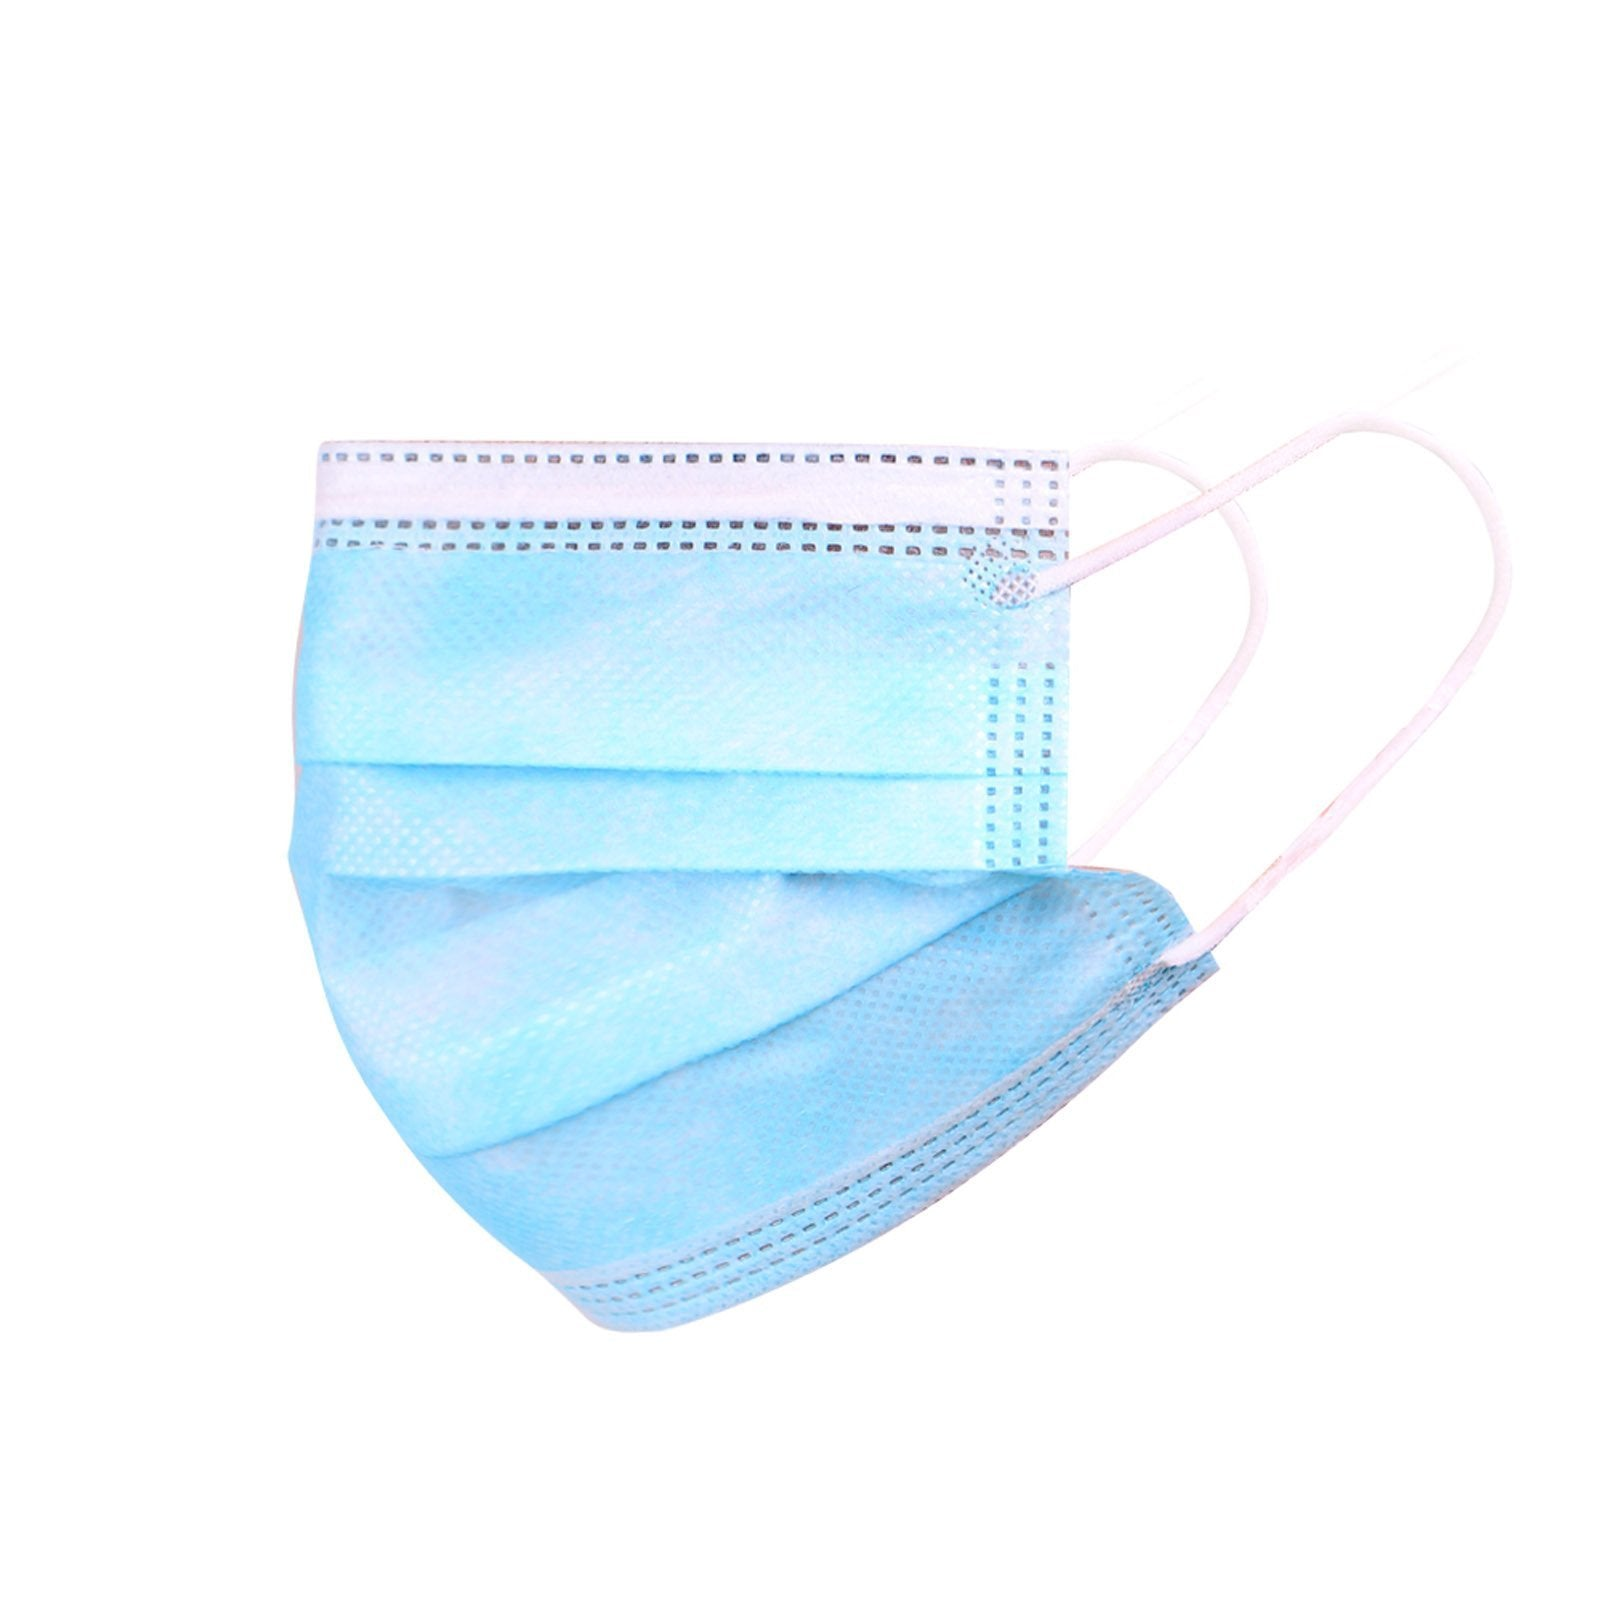 200PCS Kids Disposable Face Mask 3 Layers Safety Masks for Child